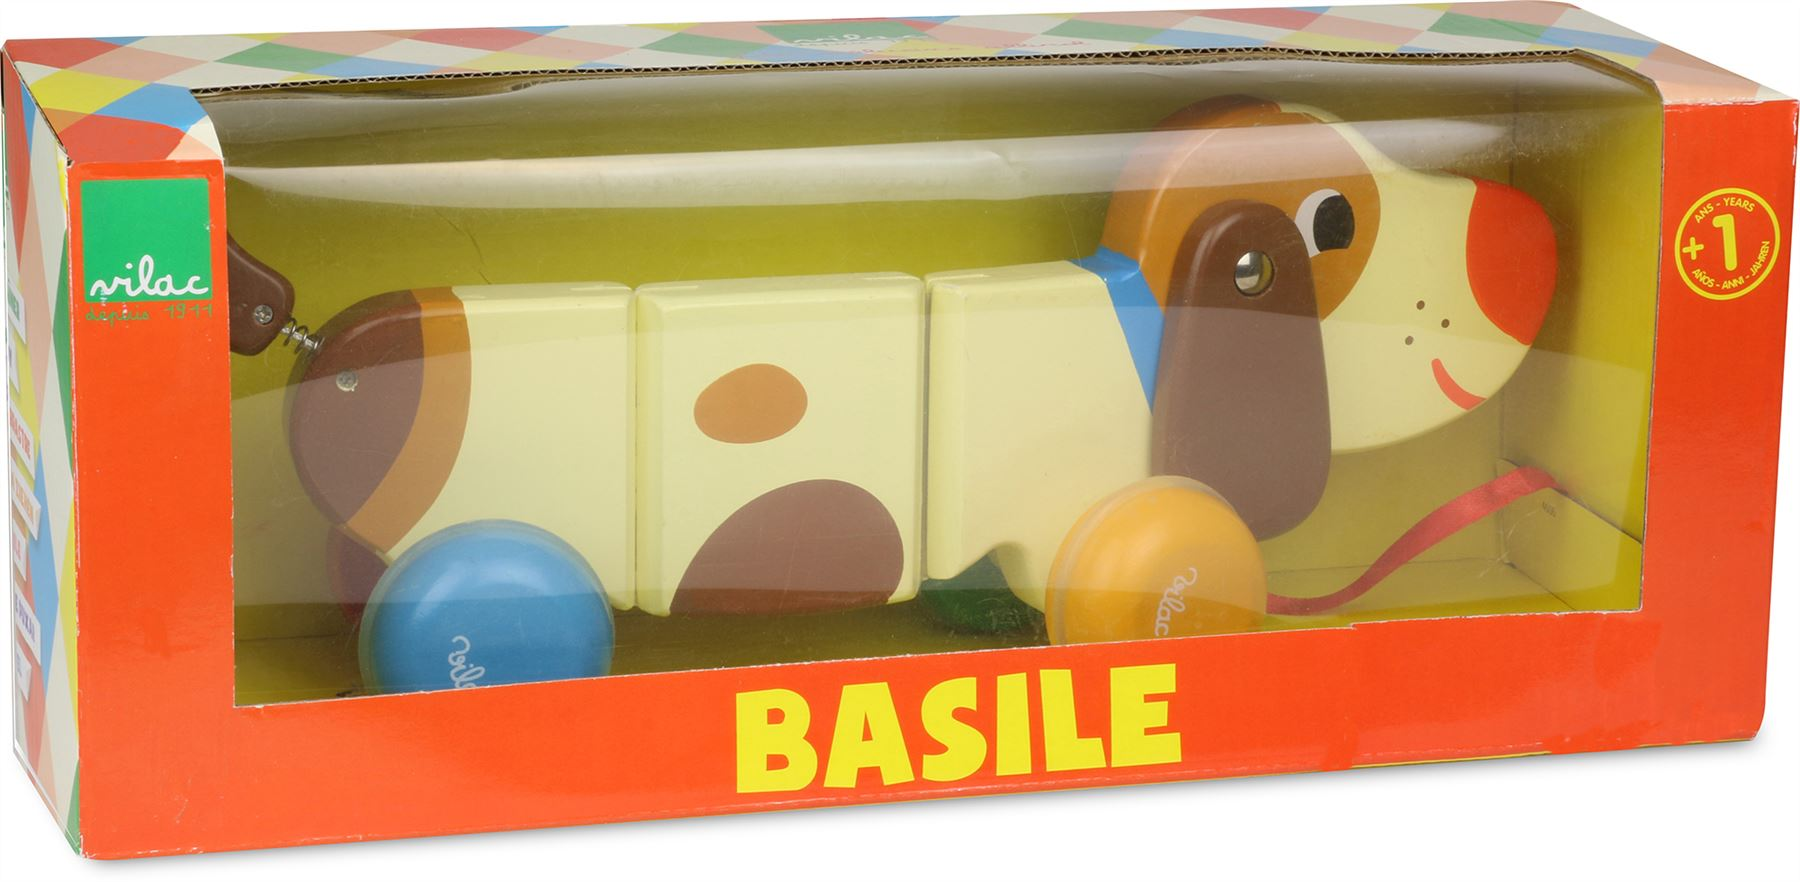 Vilac Basile The Dog Pull-along Toy Baby/toddler Wooden Animal Walking Pet Bn Wooden & Handcrafted Toys